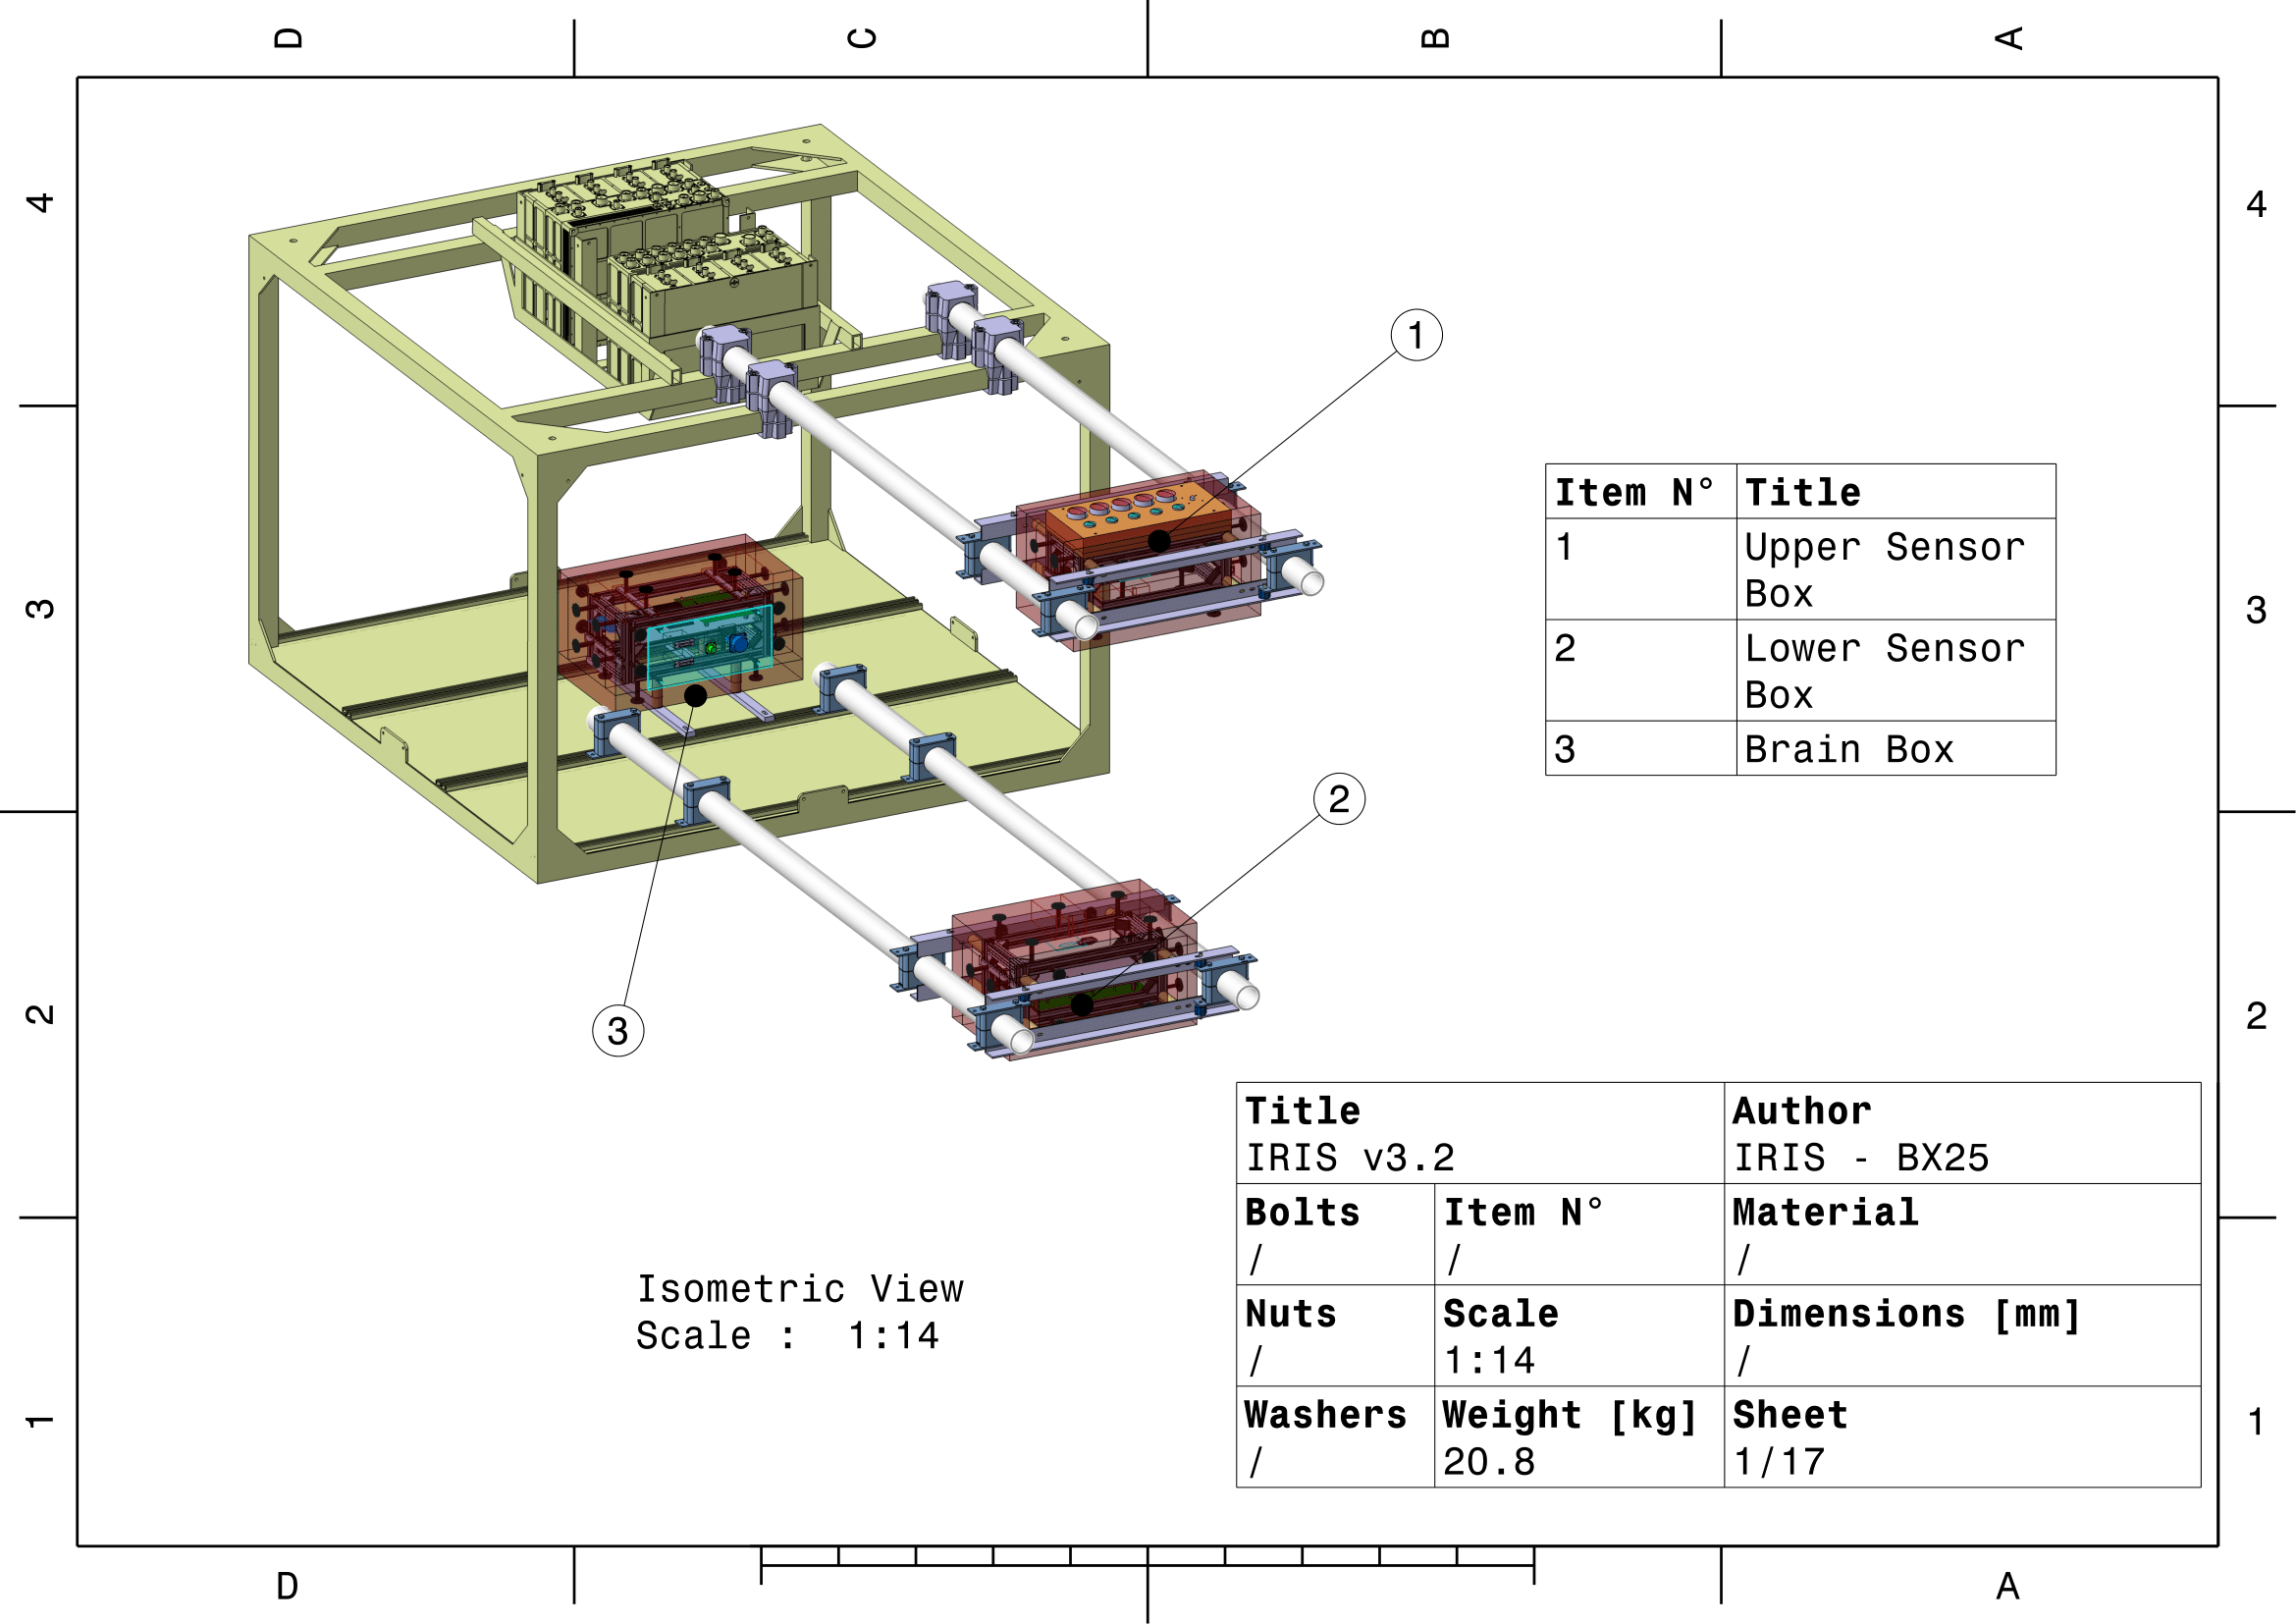 BX25_IRIS_SEDv32_Technical_Drawing-01